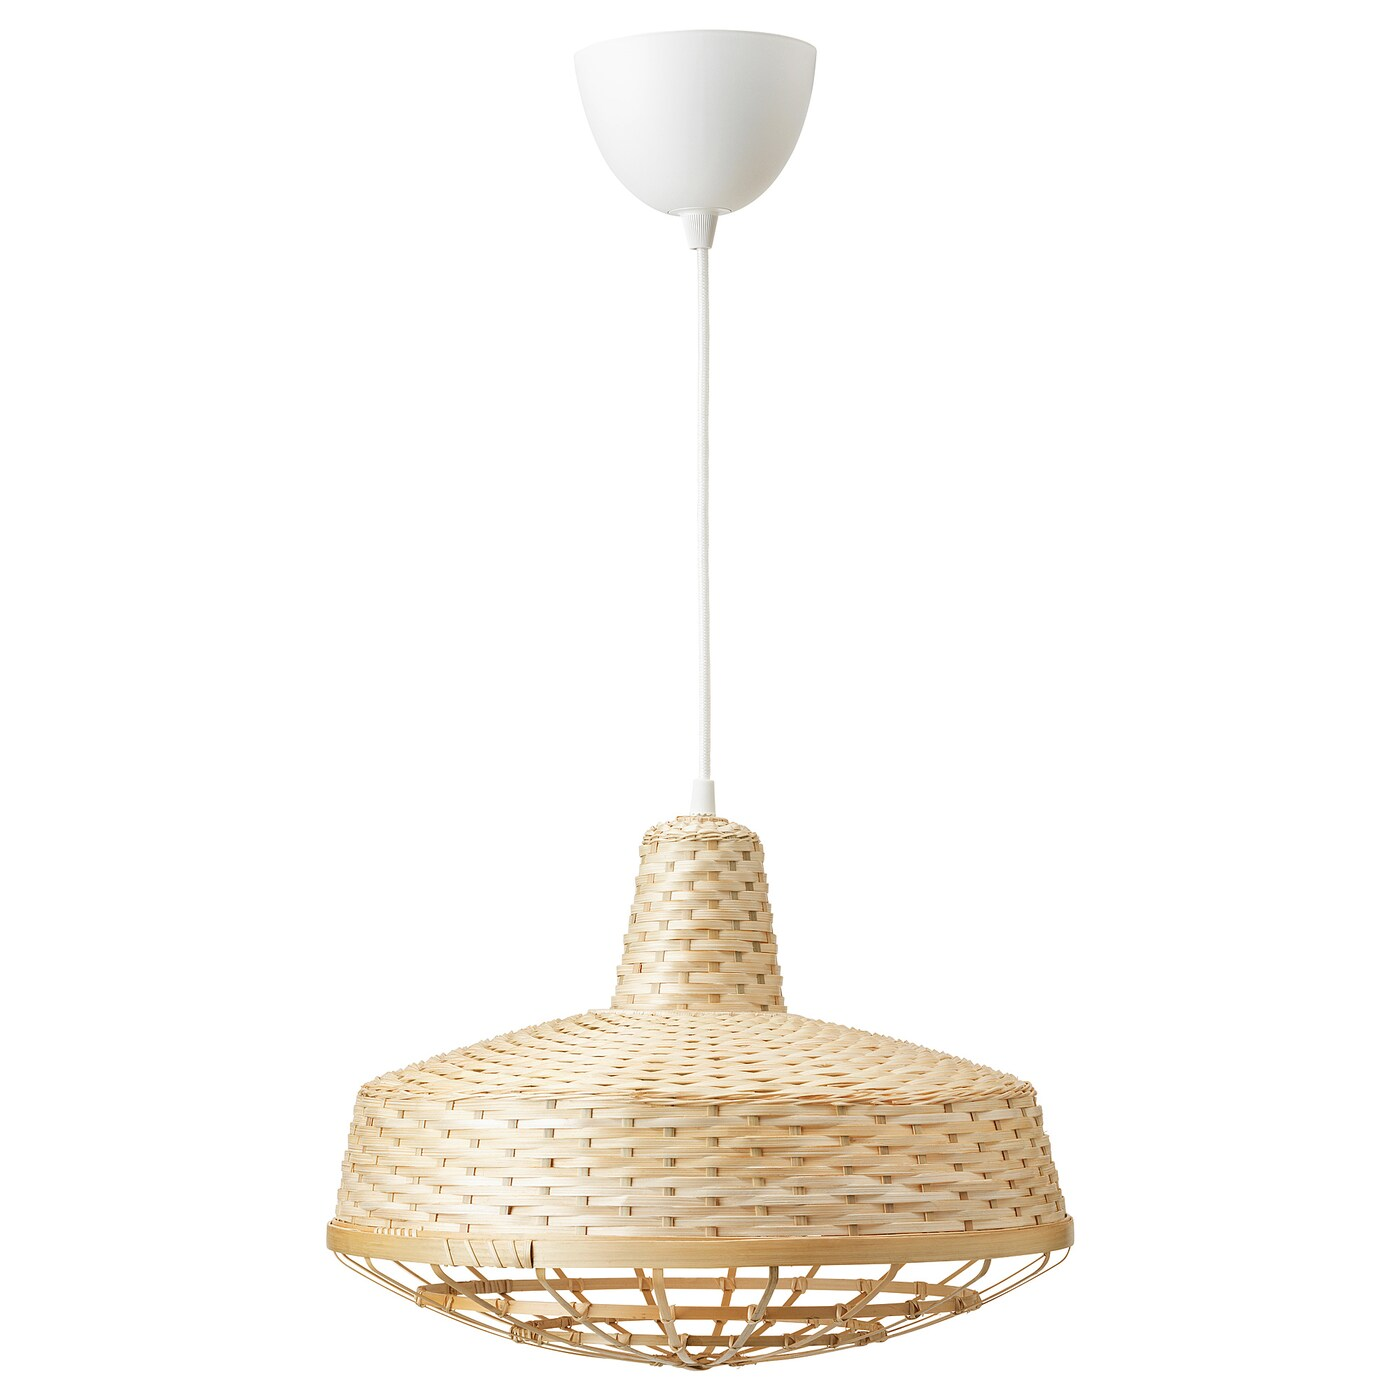 IKEA INDUSTRIELL pendant lamp Each handmade natural fibre shade is unique.